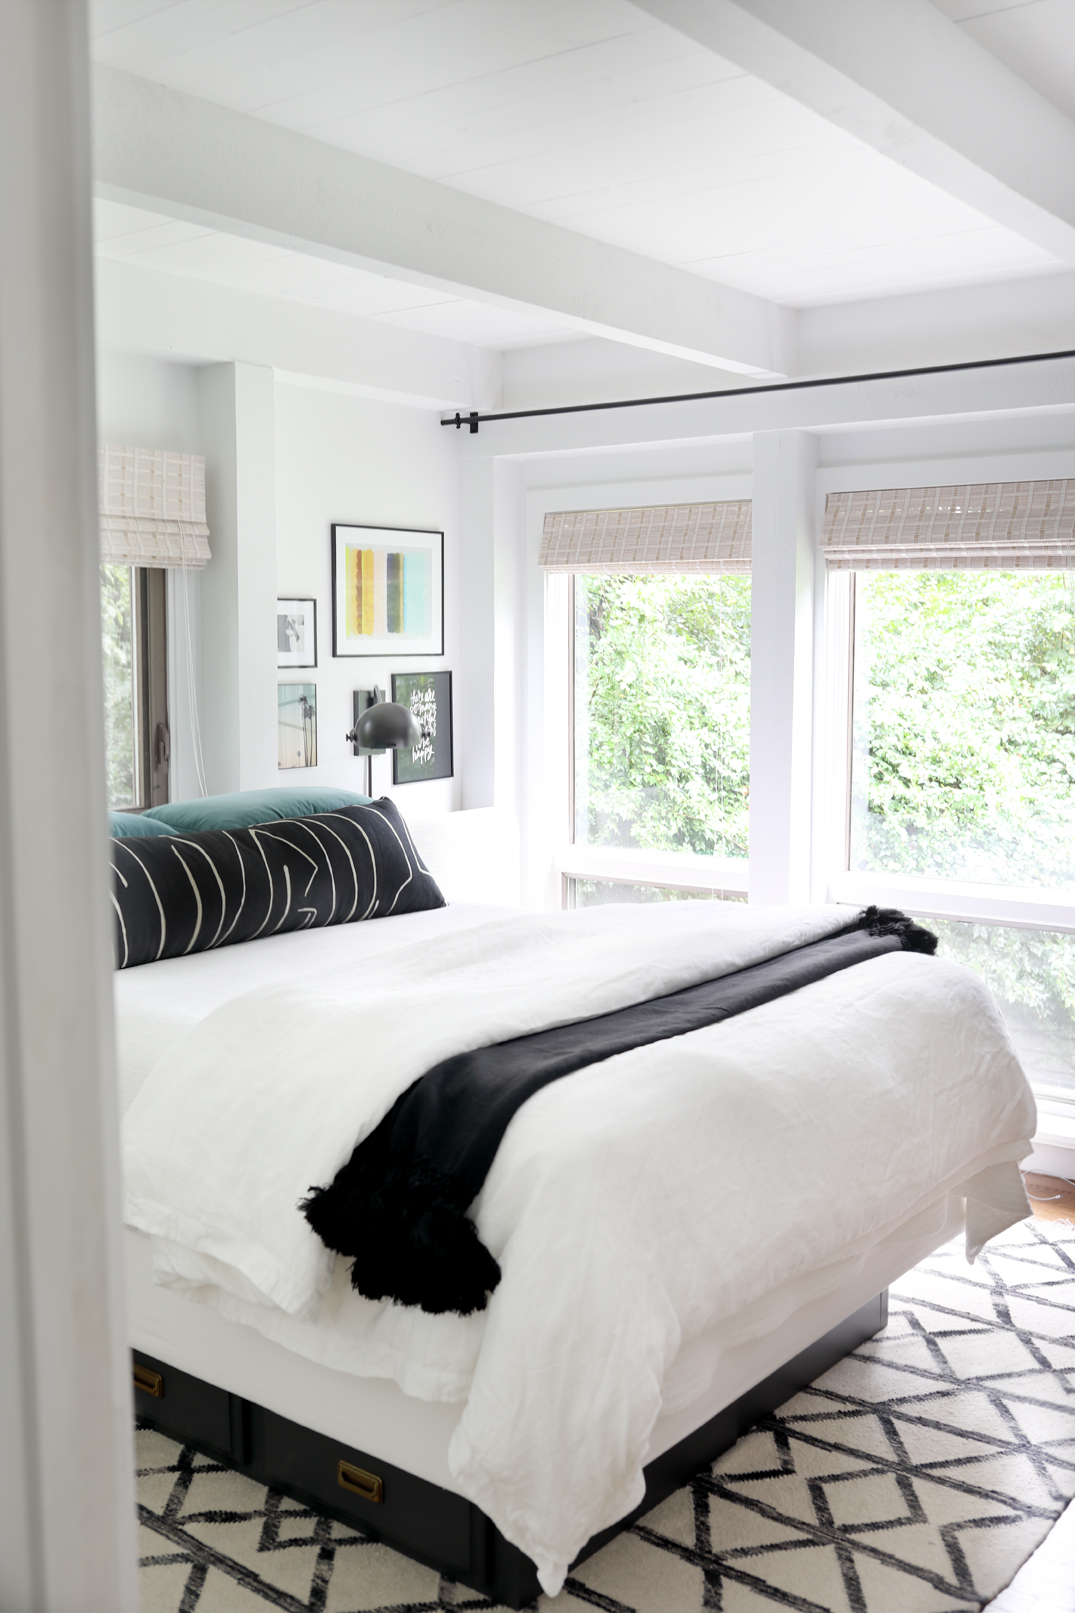 National Make Your Bed Day Crane Canopy Our Guest Room Dorsey Designs